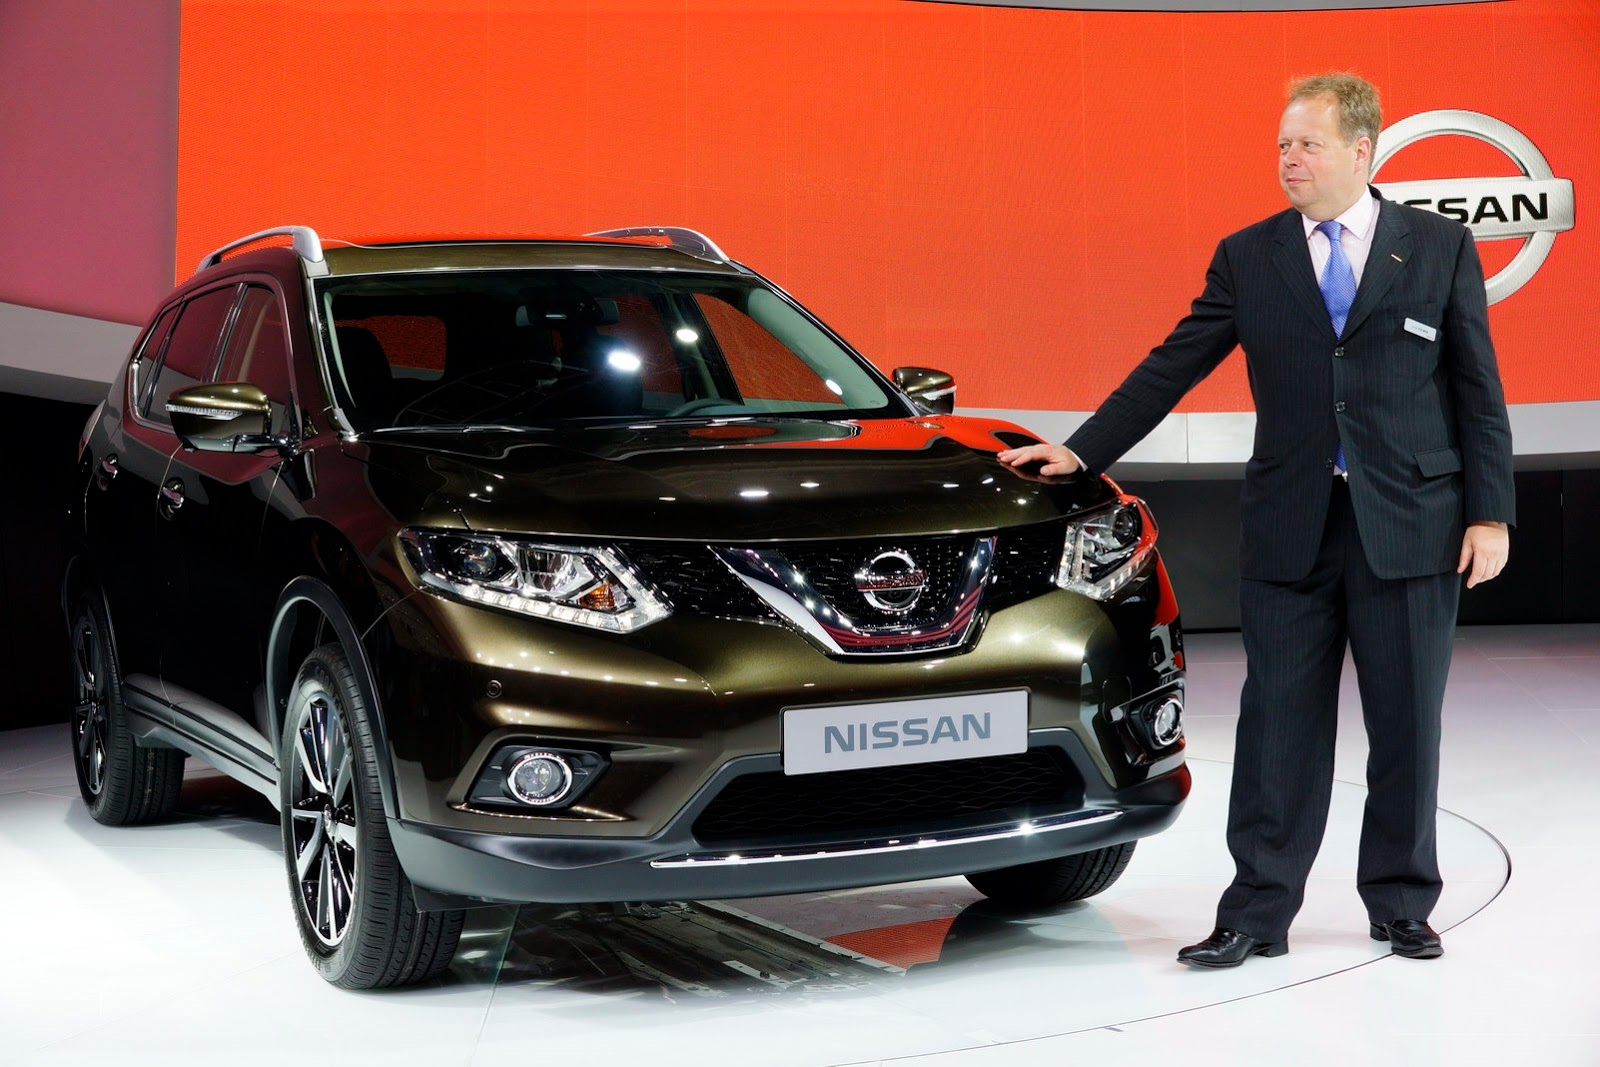 Vroom5000cc: Nissan X-Trail 2014: New Excitement